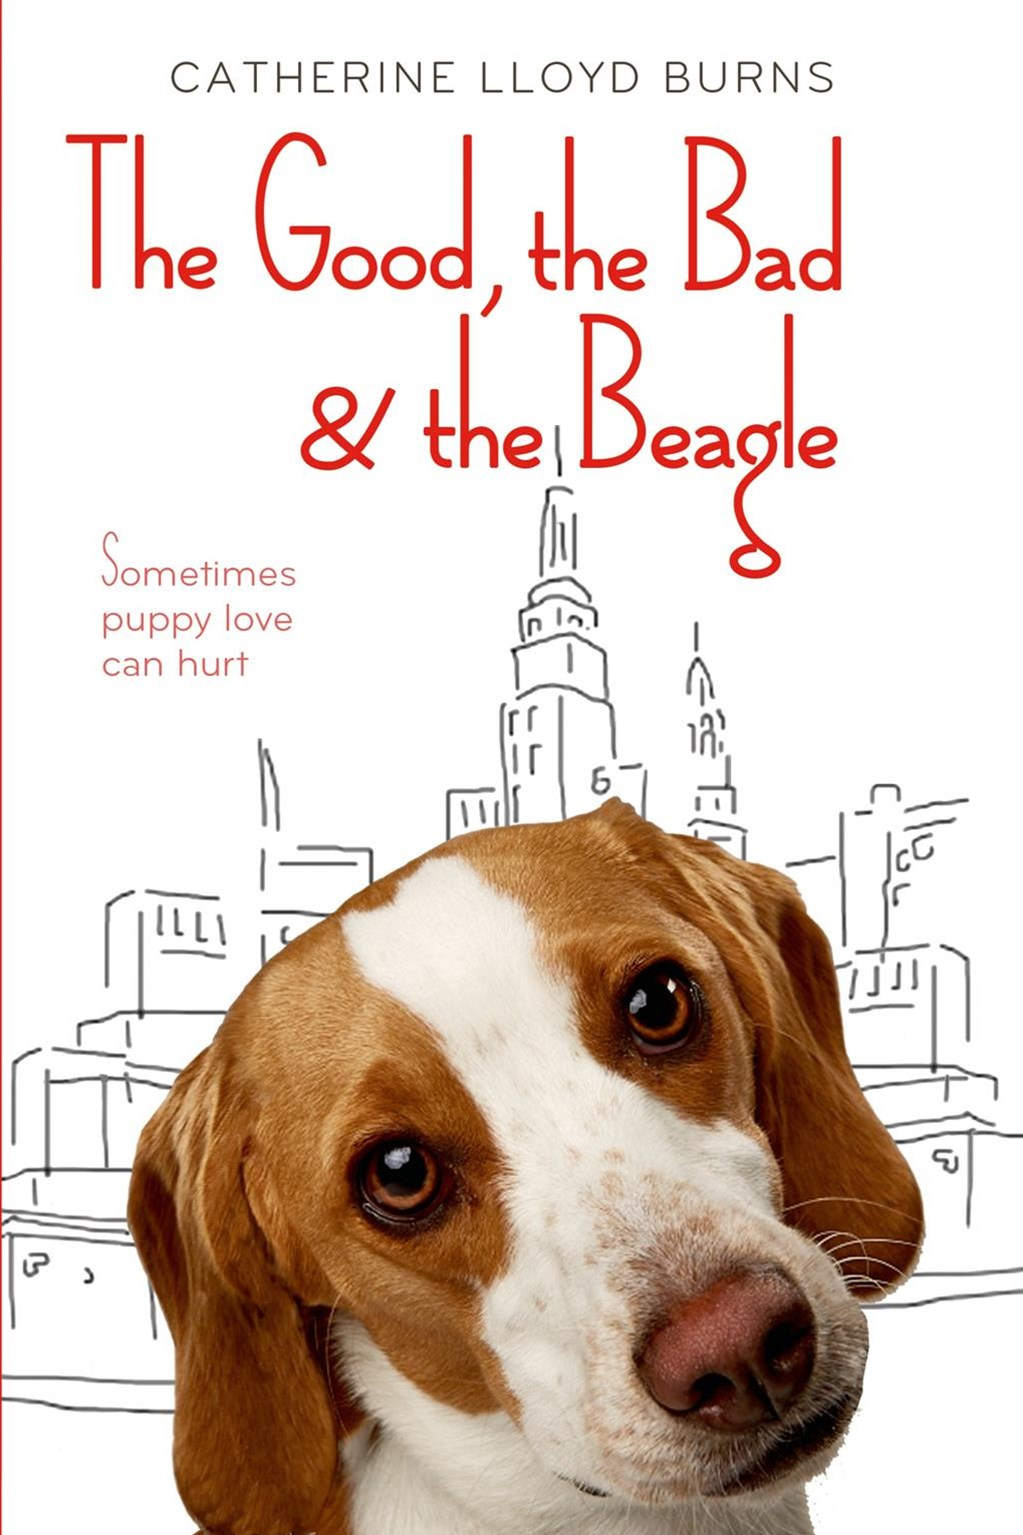 The Good, the Bad and the Beagle